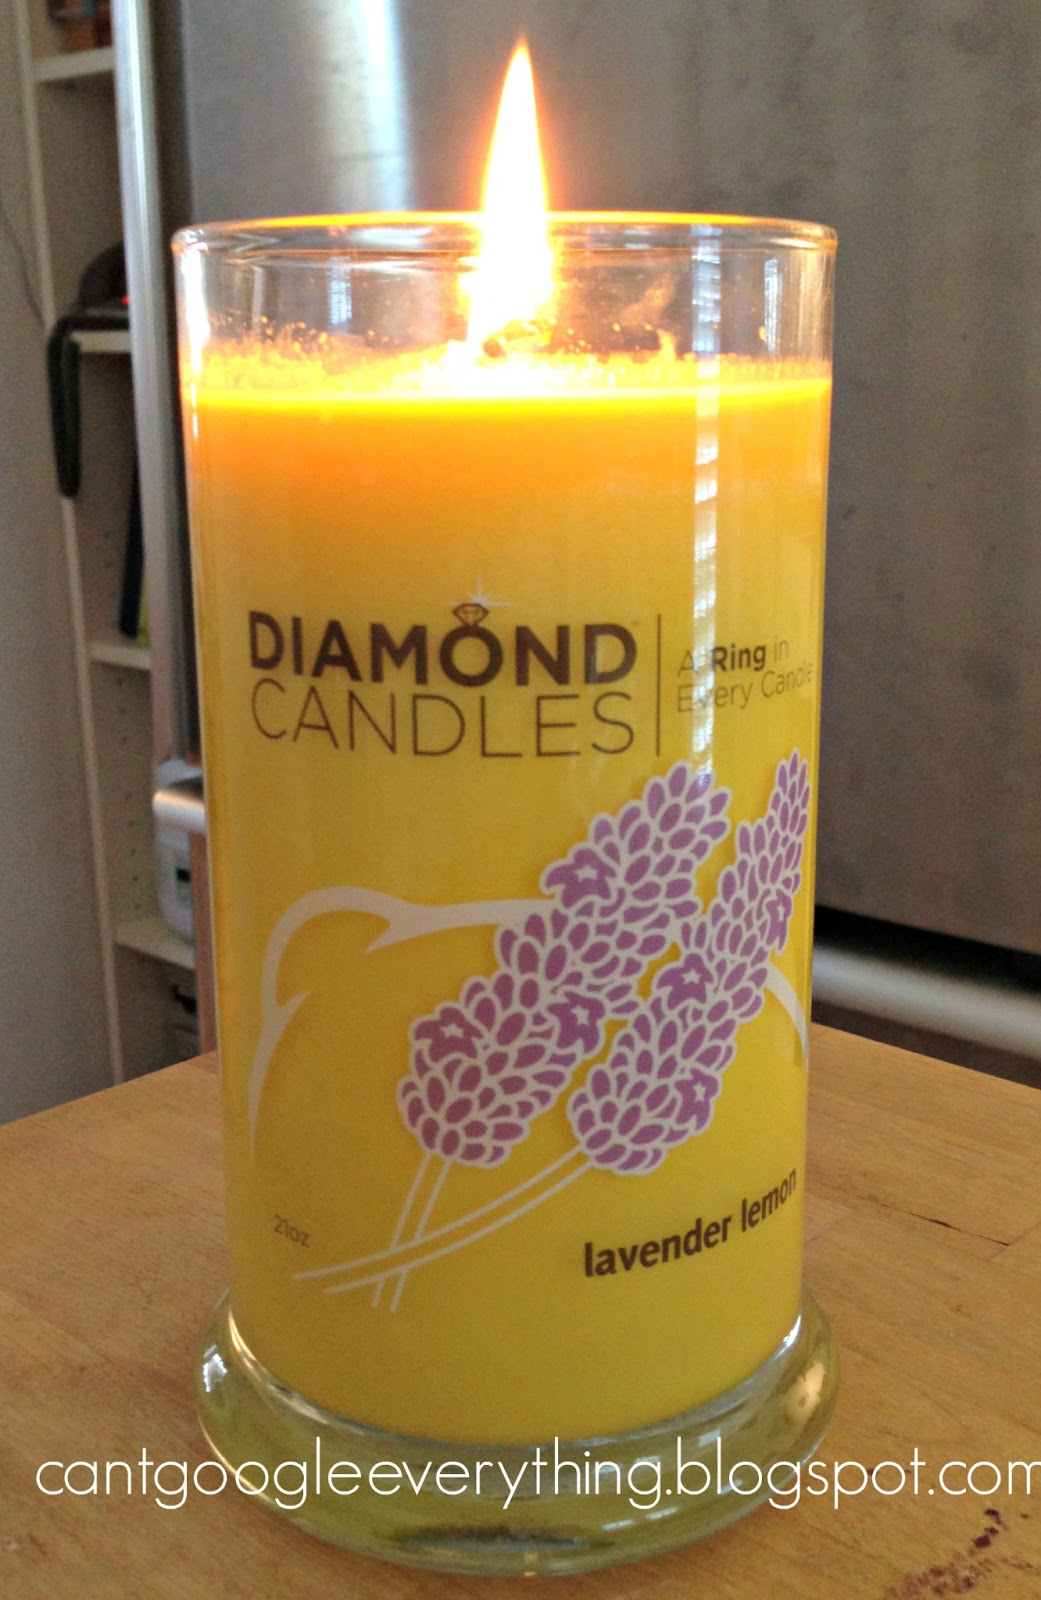 Diamond Candles Review My Mini Adventurer